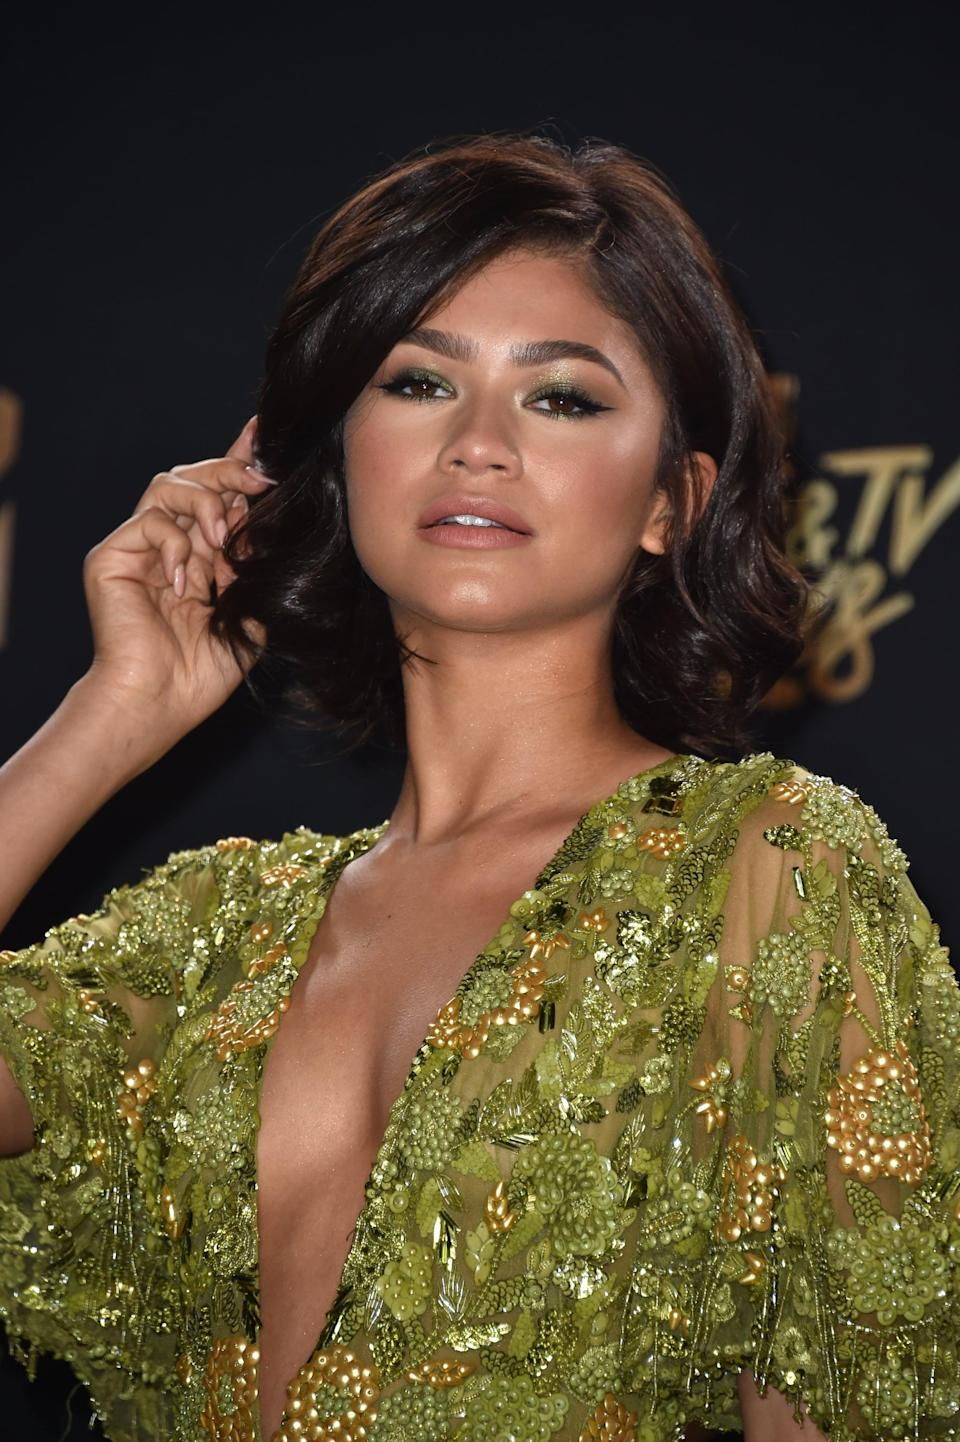 "<p><a class=""link rapid-noclick-resp"" href=""https://www.popsugar.com/Zendaya"" rel=""nofollow noopener"" target=""_blank"" data-ylk=""slk:Zendaya"">Zendaya</a> looked glamorous at the MTV Movie &amp; TV Awards in 2017 with her curled bob.</p>"